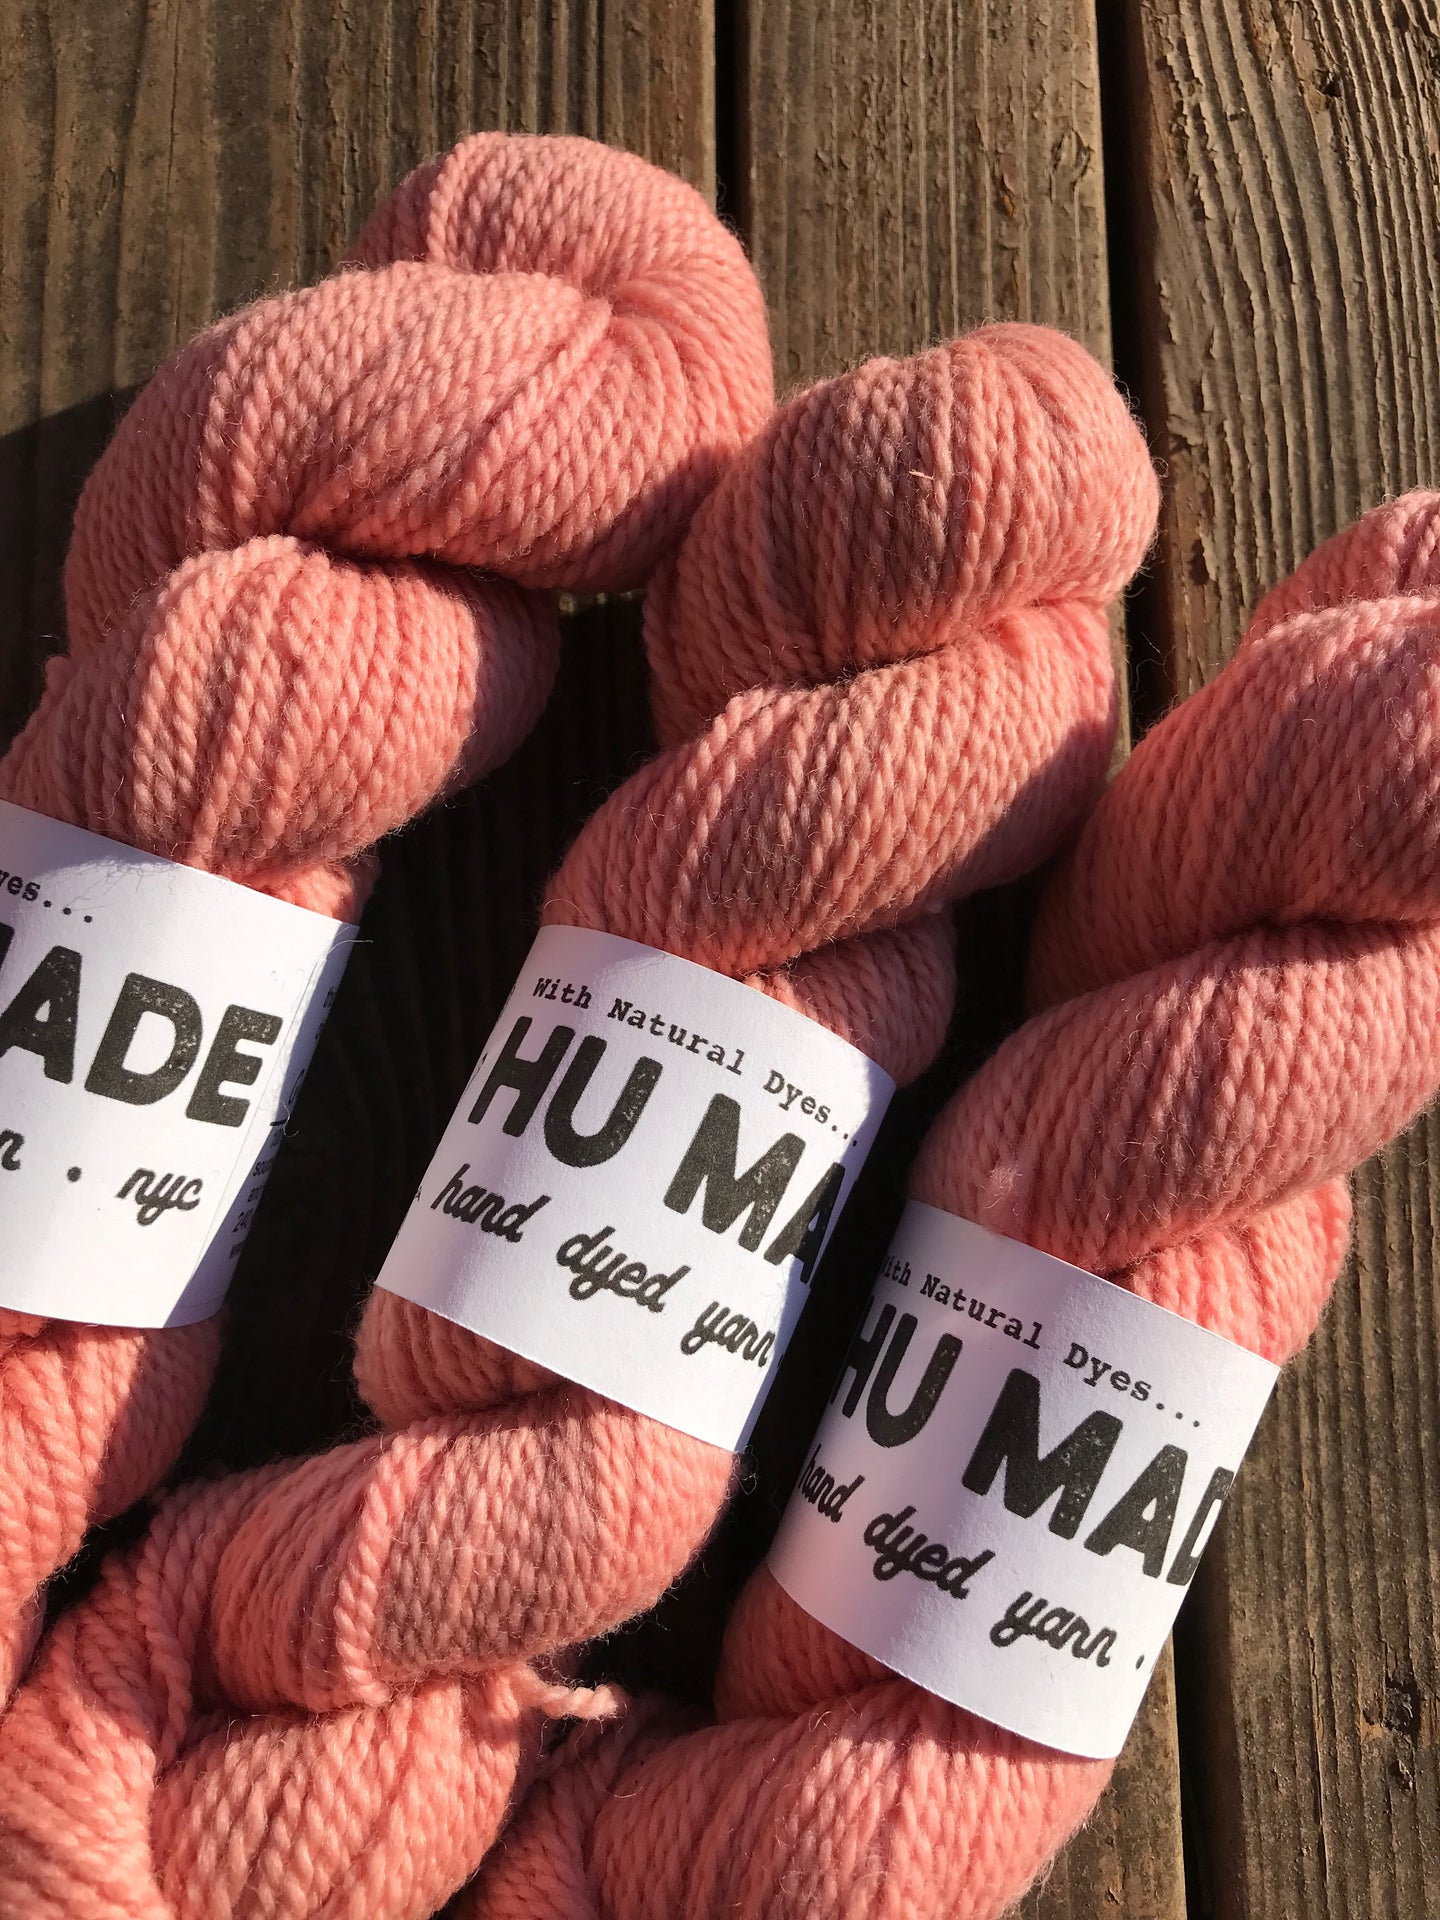 NATURALLY DYED DK WEIGHT - CORAL